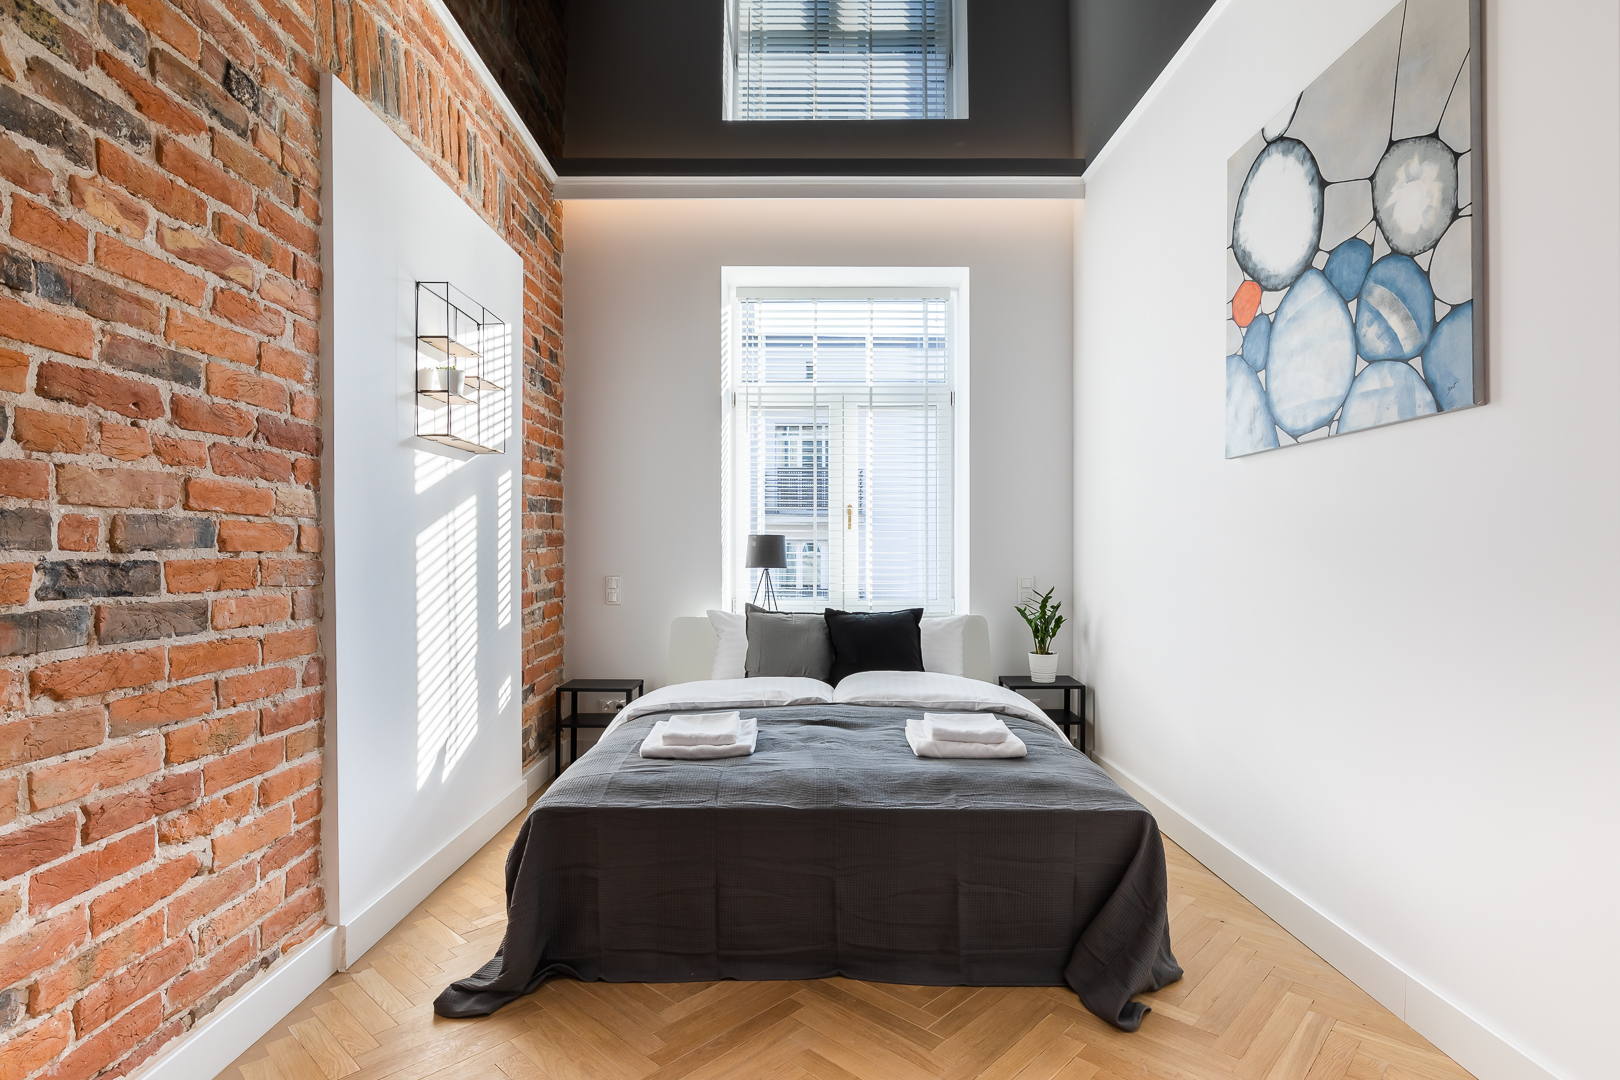 Bed at Wspolna Apartments